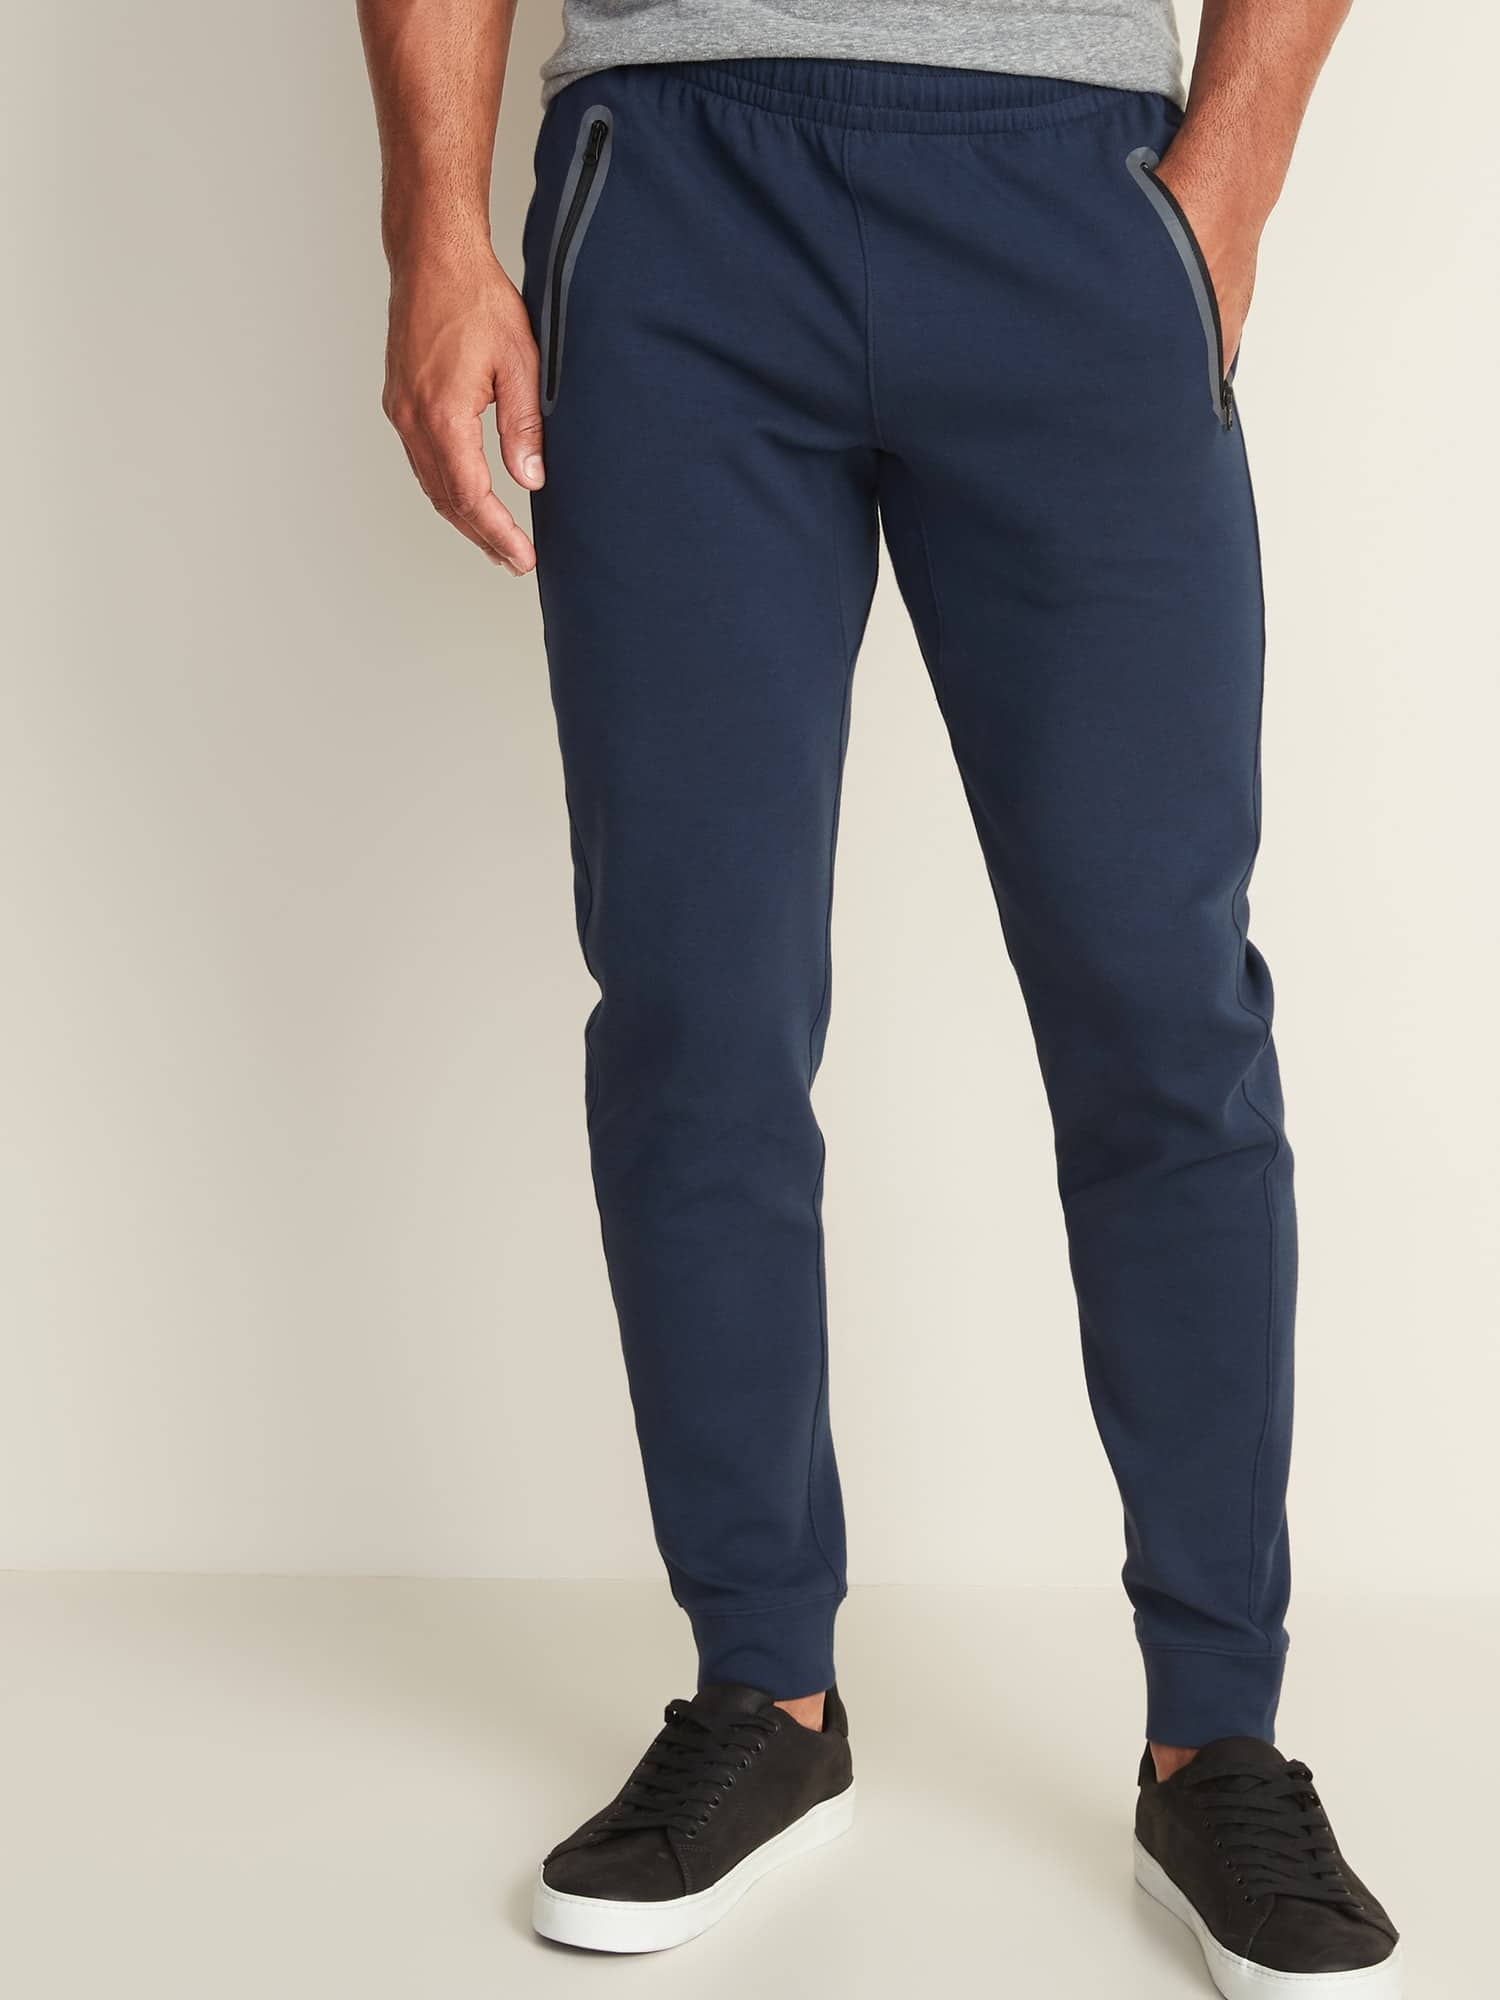 Old Navy Men's Dynamic Fleece Joggers $11.25,  Straight-Leg Sweatpants $12.75, Adults 7.5-in Jogger Sweat Shorts (Him/Her/They) $7.50  + Free Store Pickup